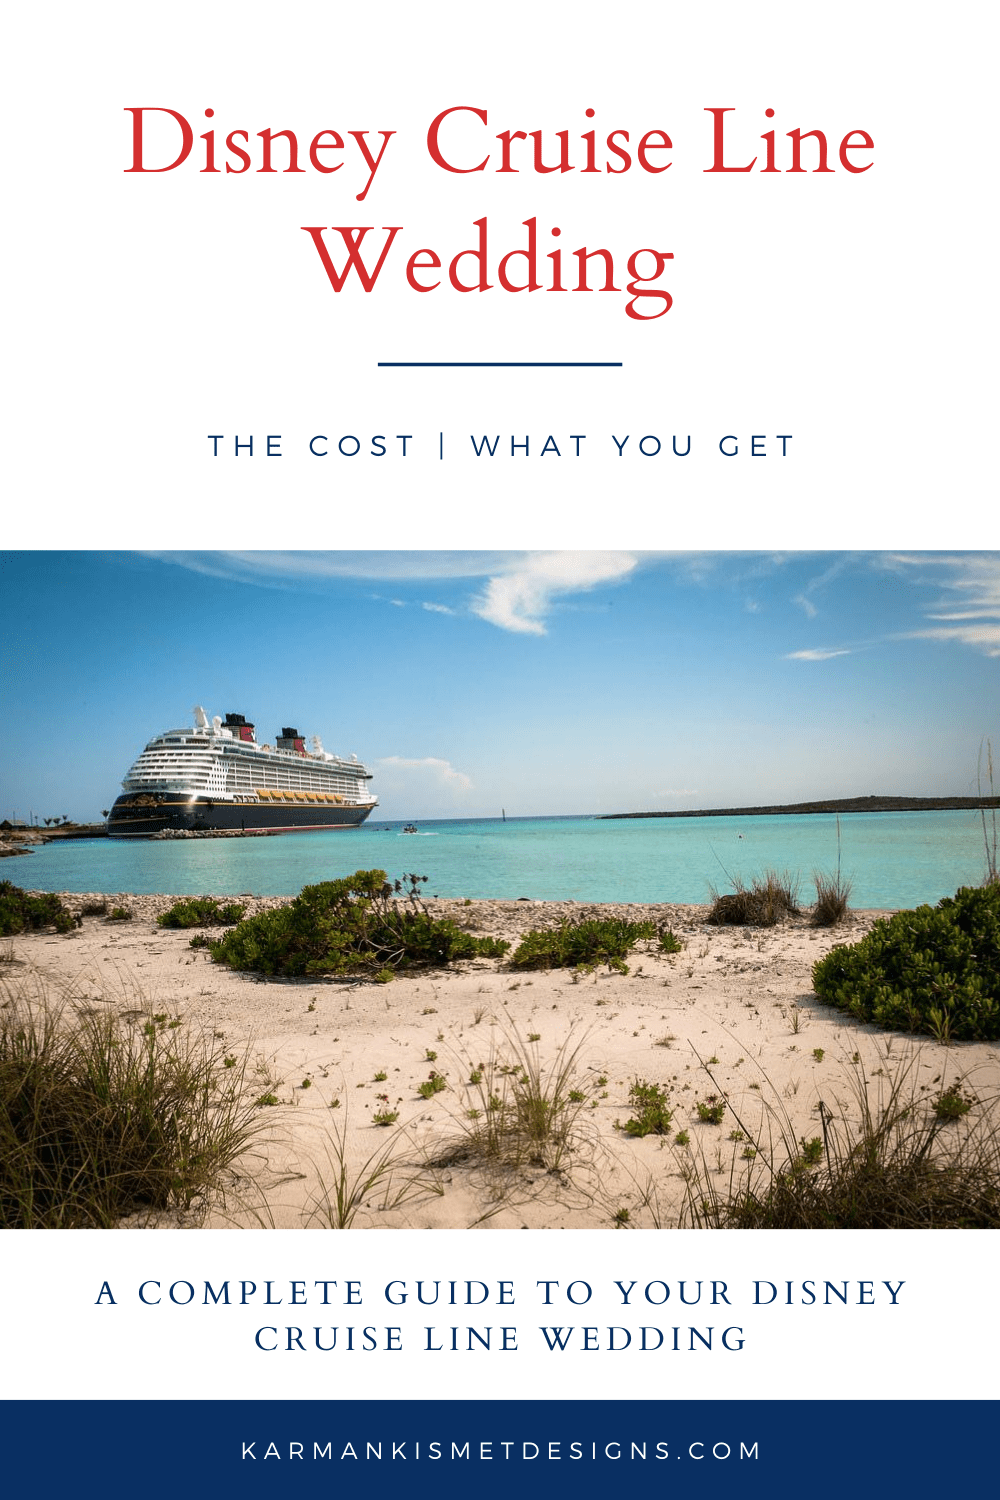 What a Disney Cruise Line Wedding includes